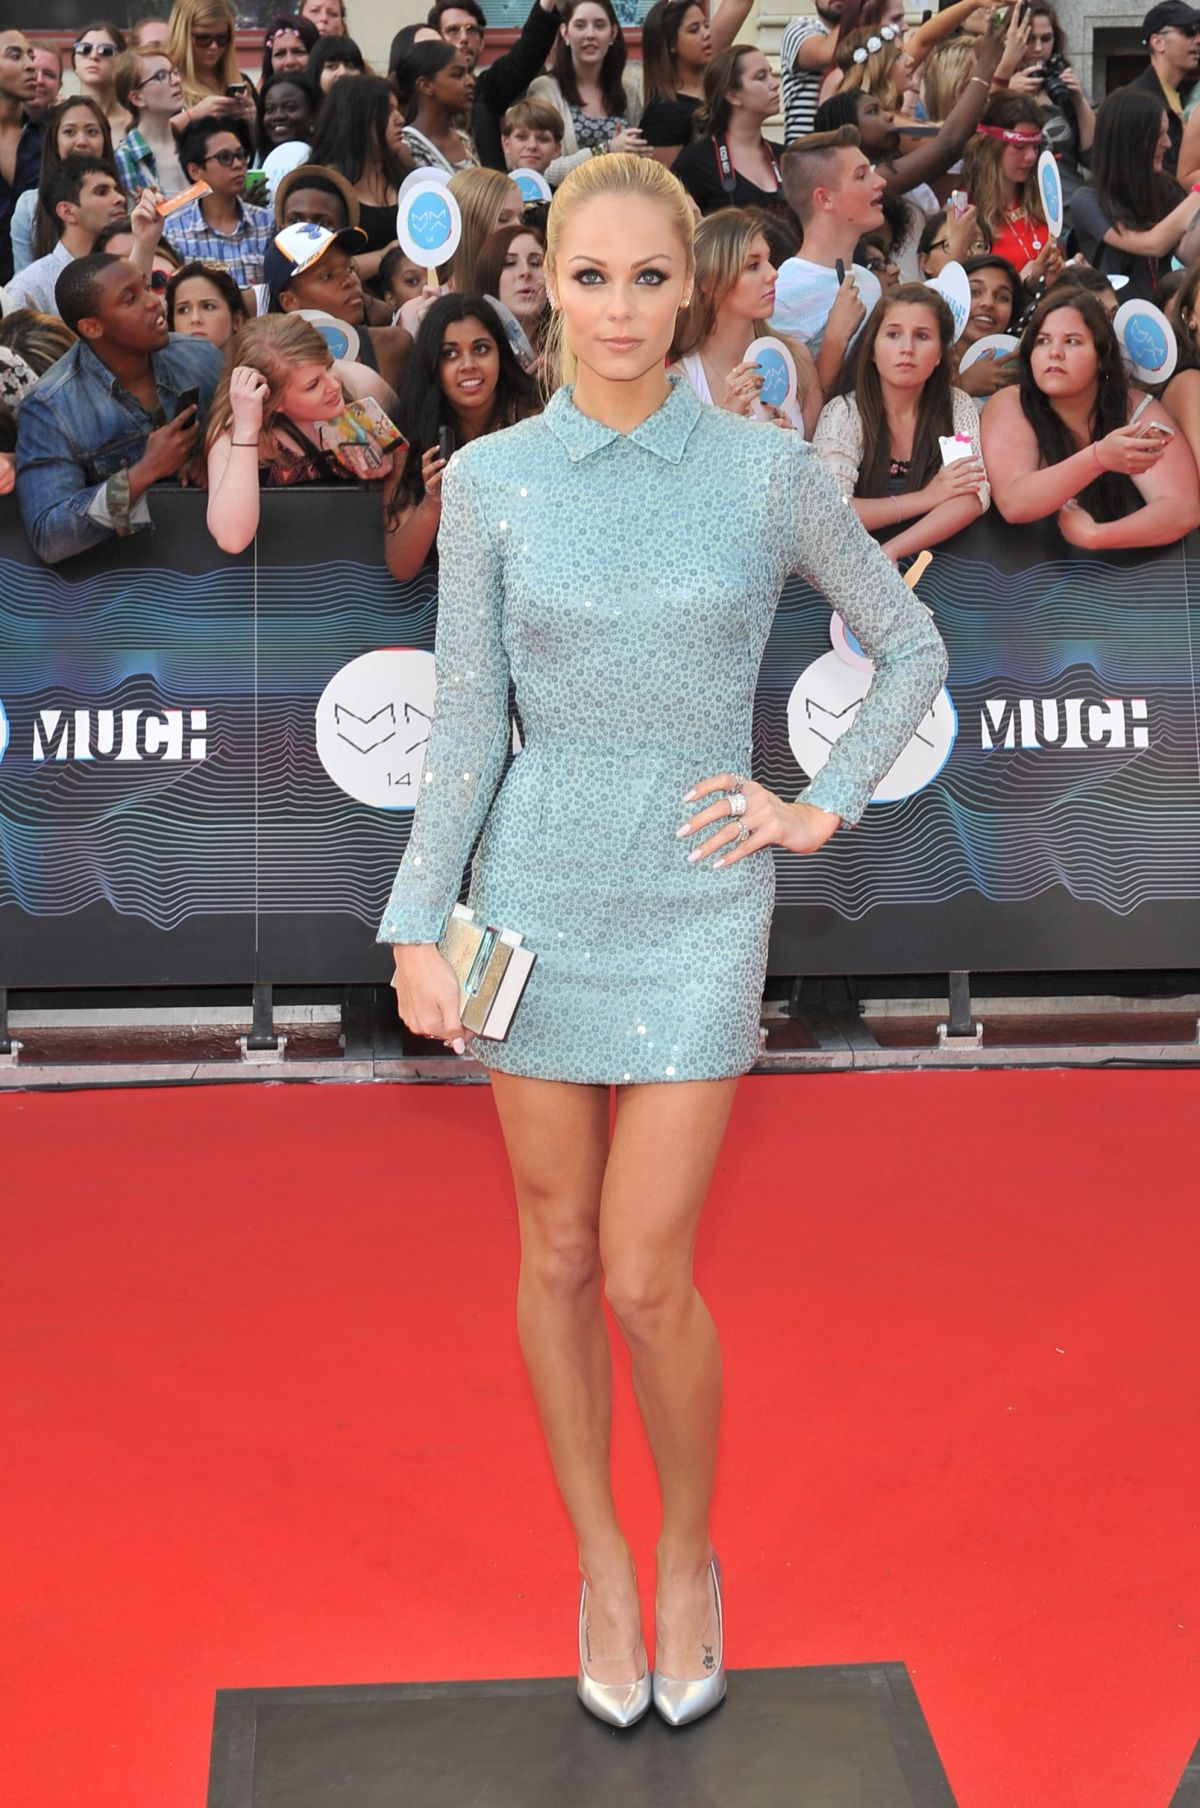 LAURA VANDERVOORT at 2015 MuchMusic Video Awards in Toronto